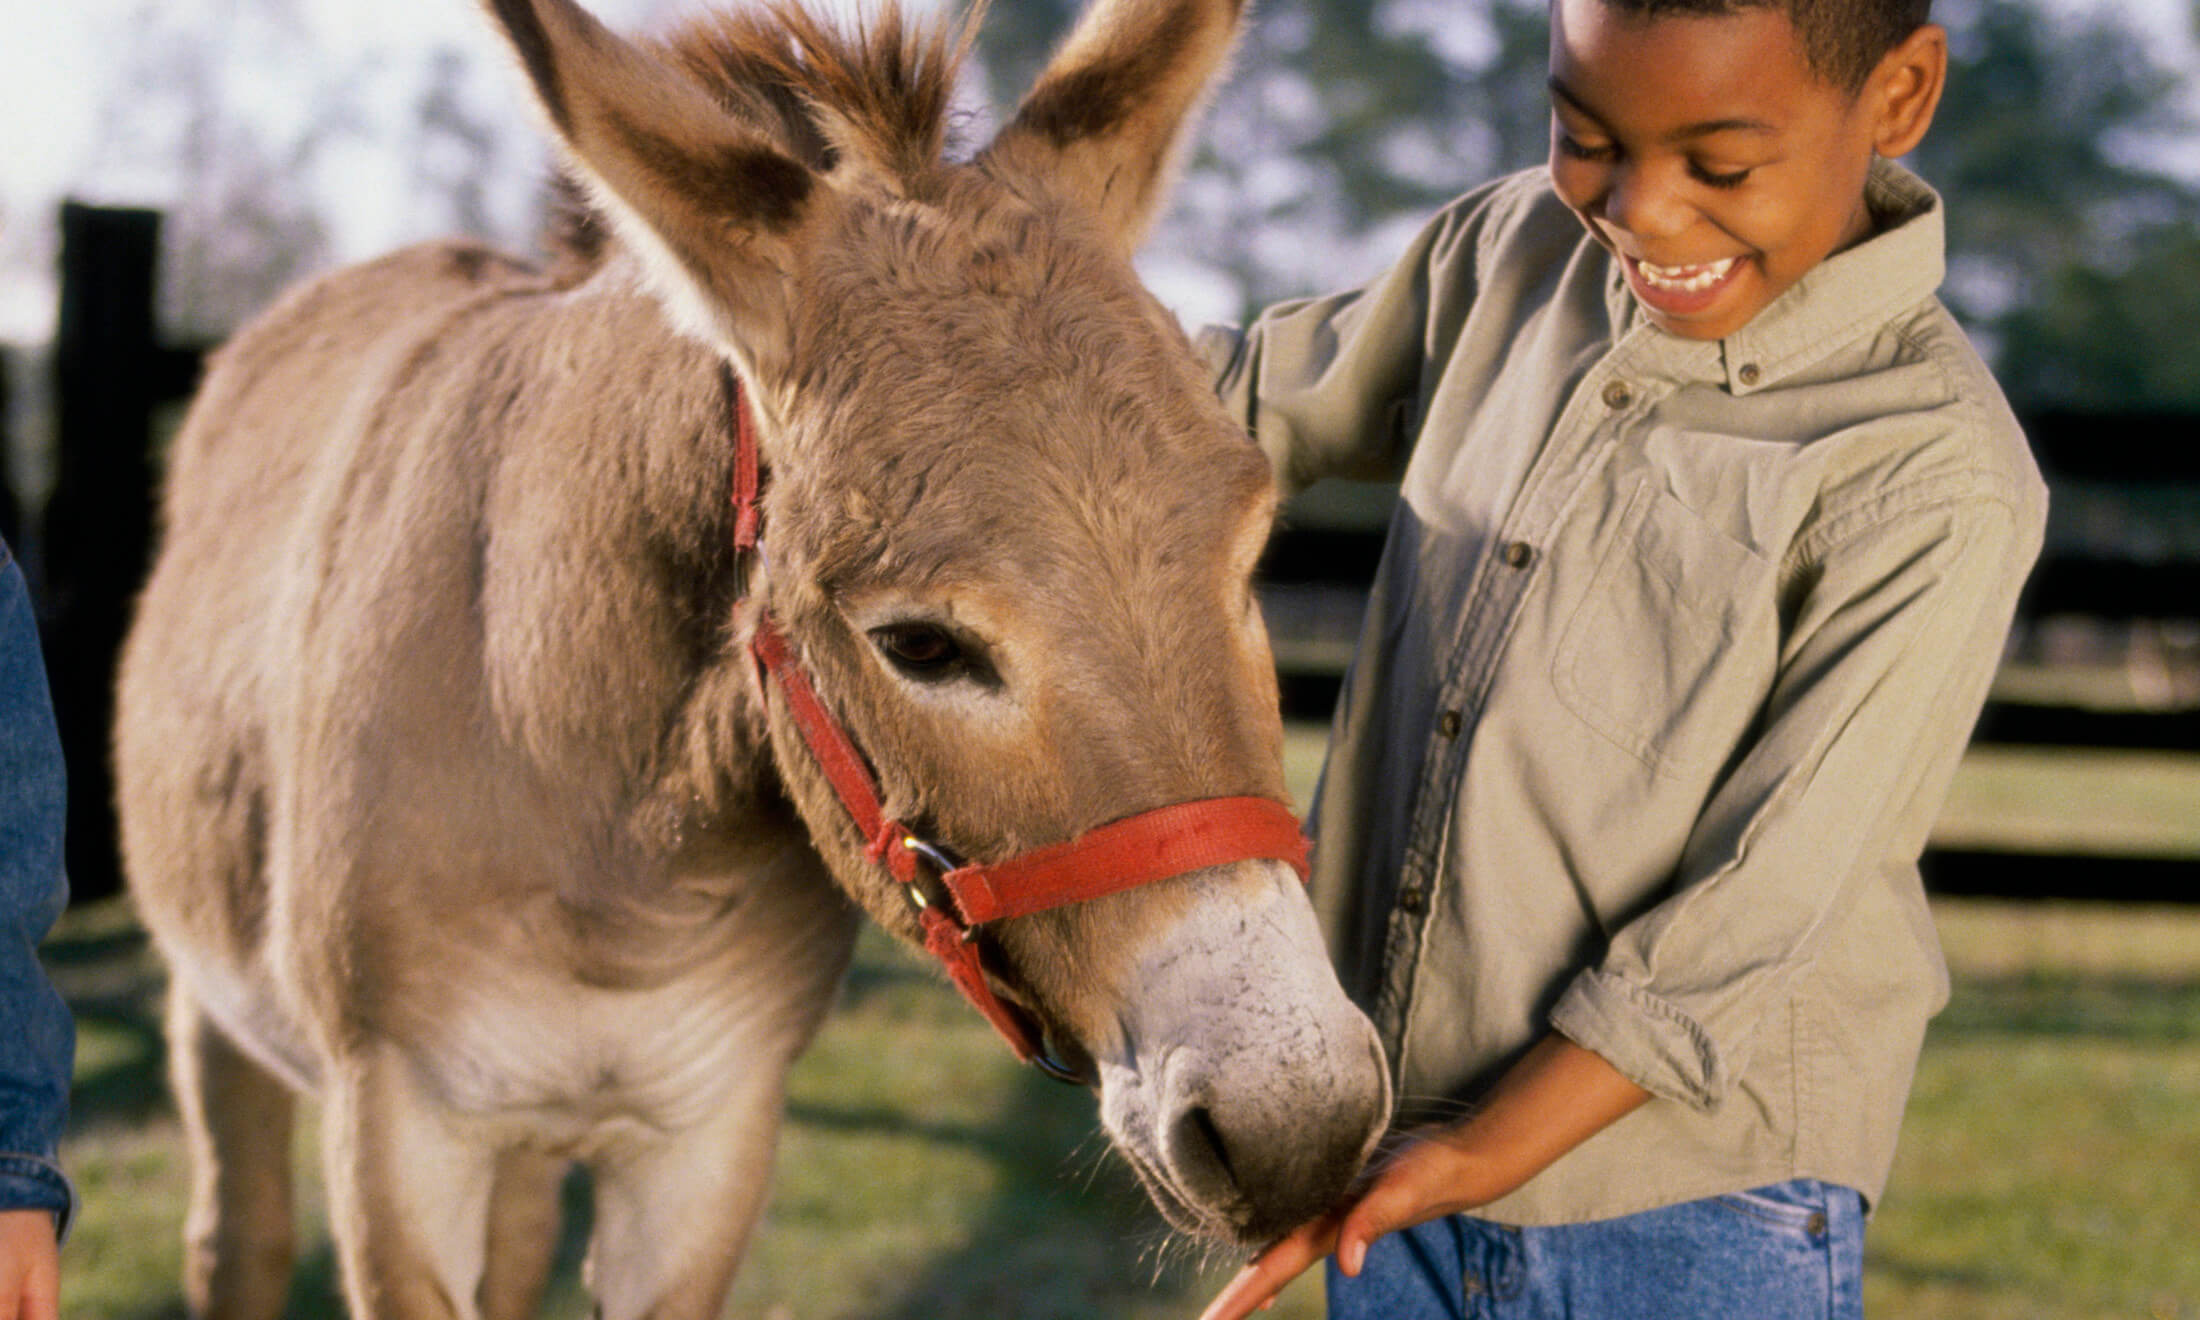 Boy feeding a donkey